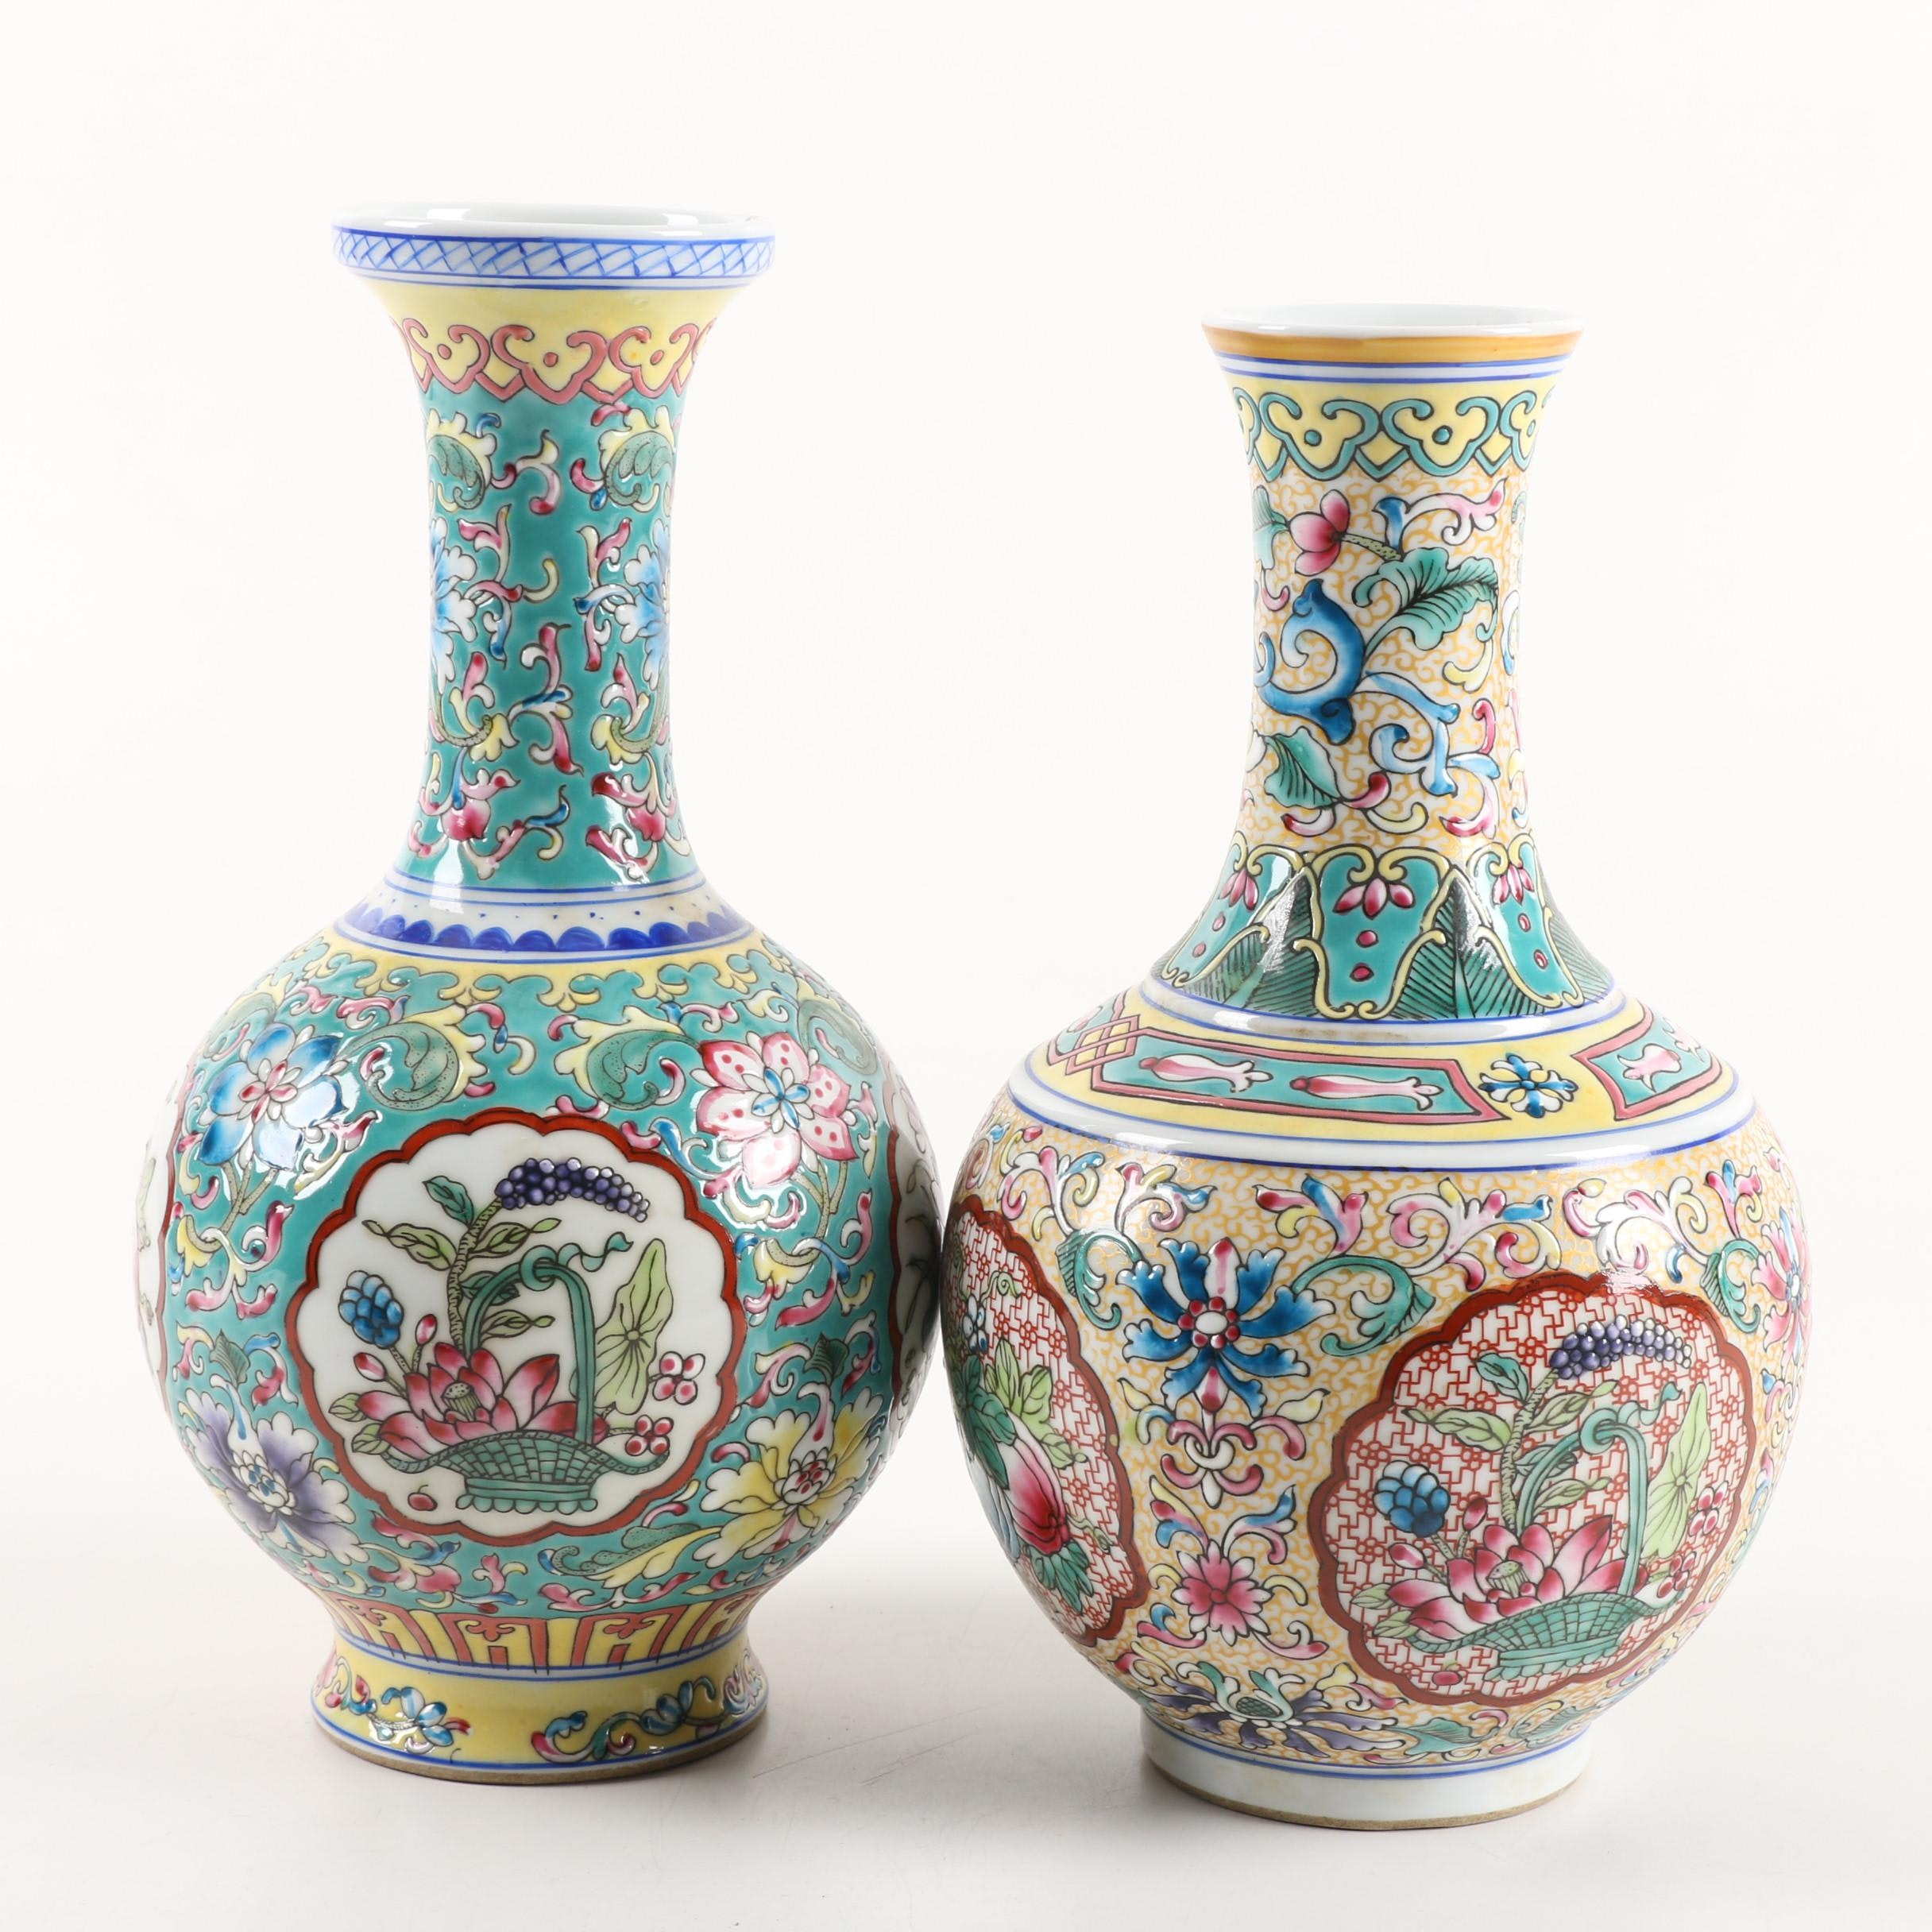 Chinese Hand-Painted Floral Ceramic Vases